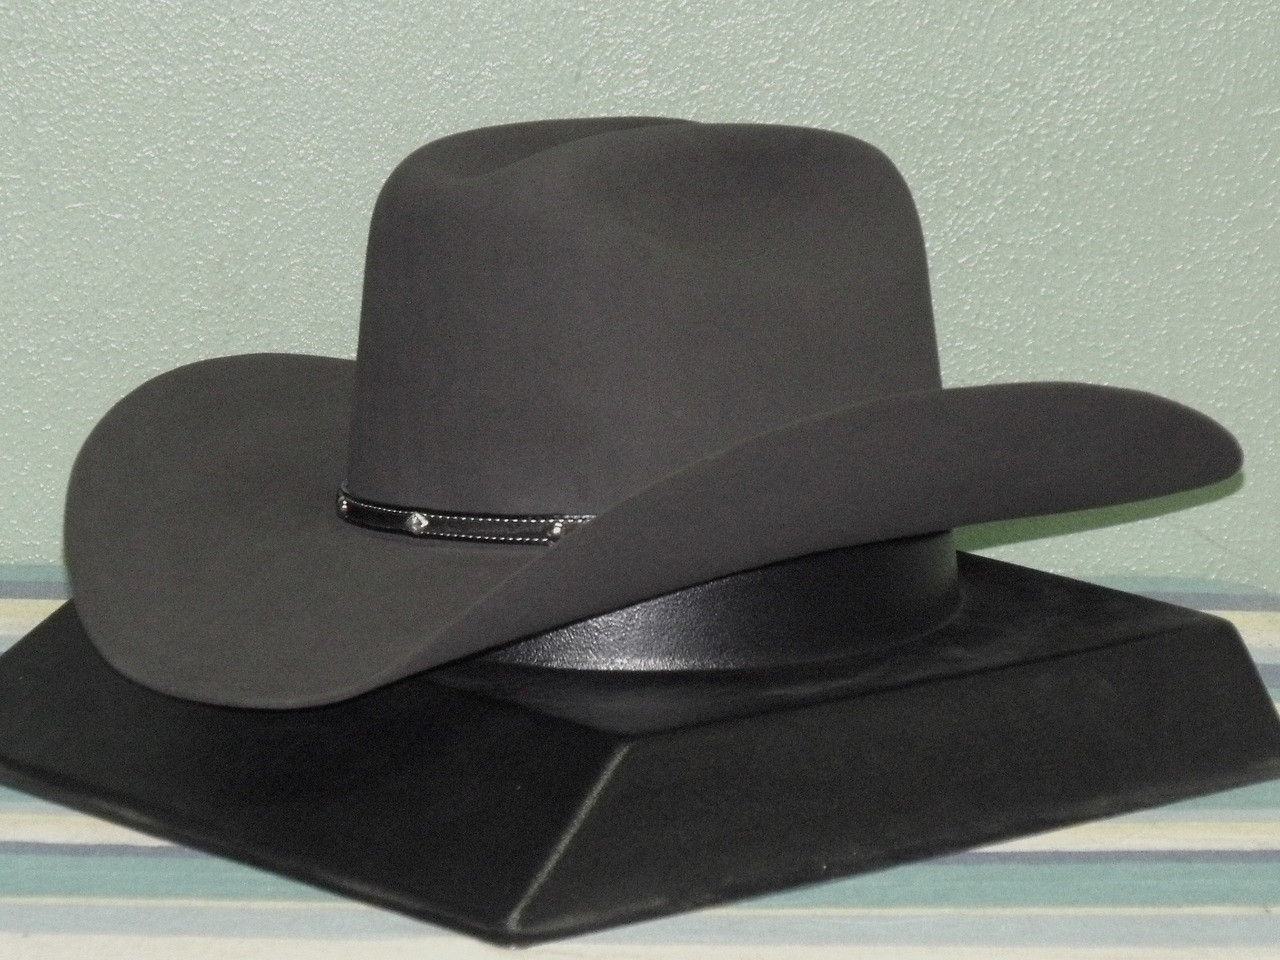 Stetson Angus 6X Fur Felt Cowboy Hat - One 2 mini Ranch cbe941e8f88